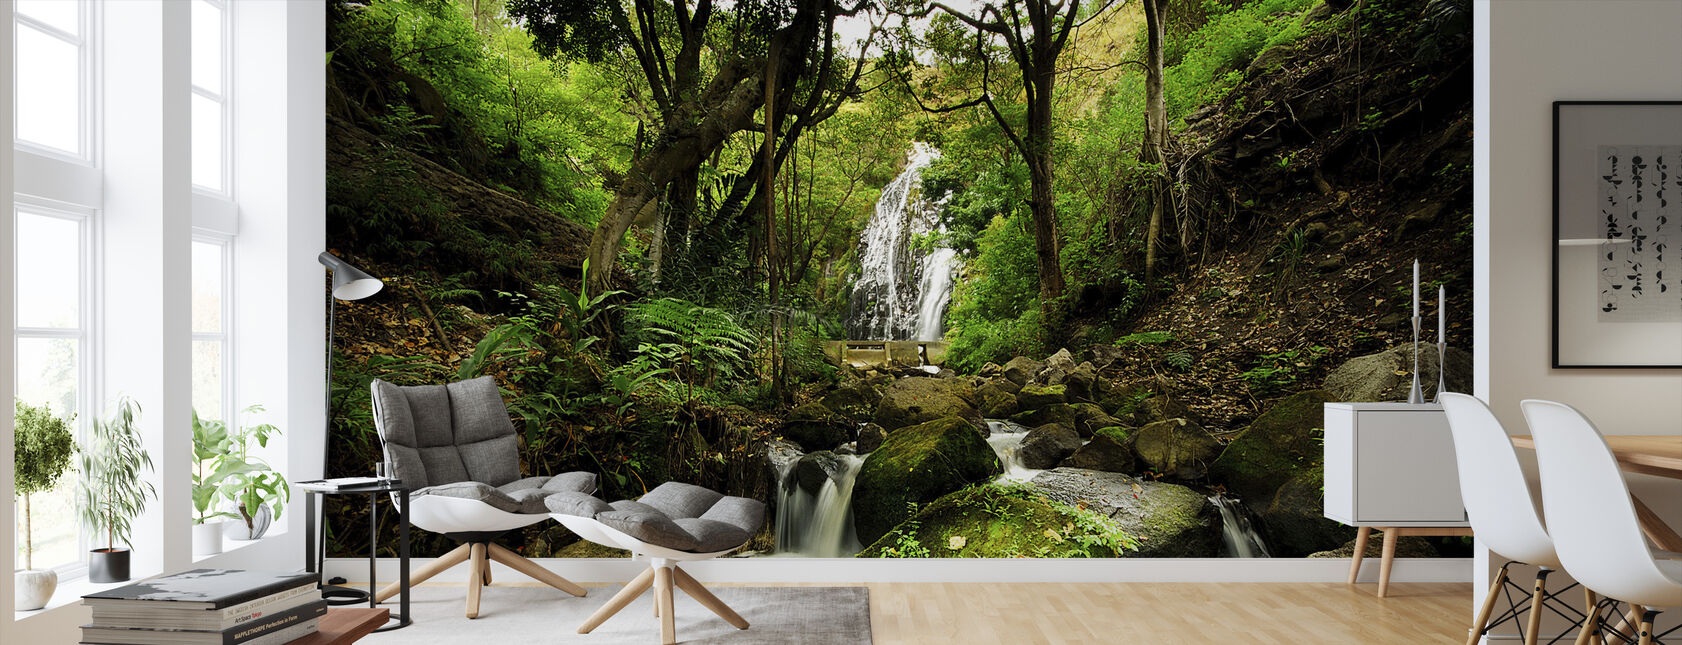 Peaceful Forest Waterfall - Wallpaper - Living Room